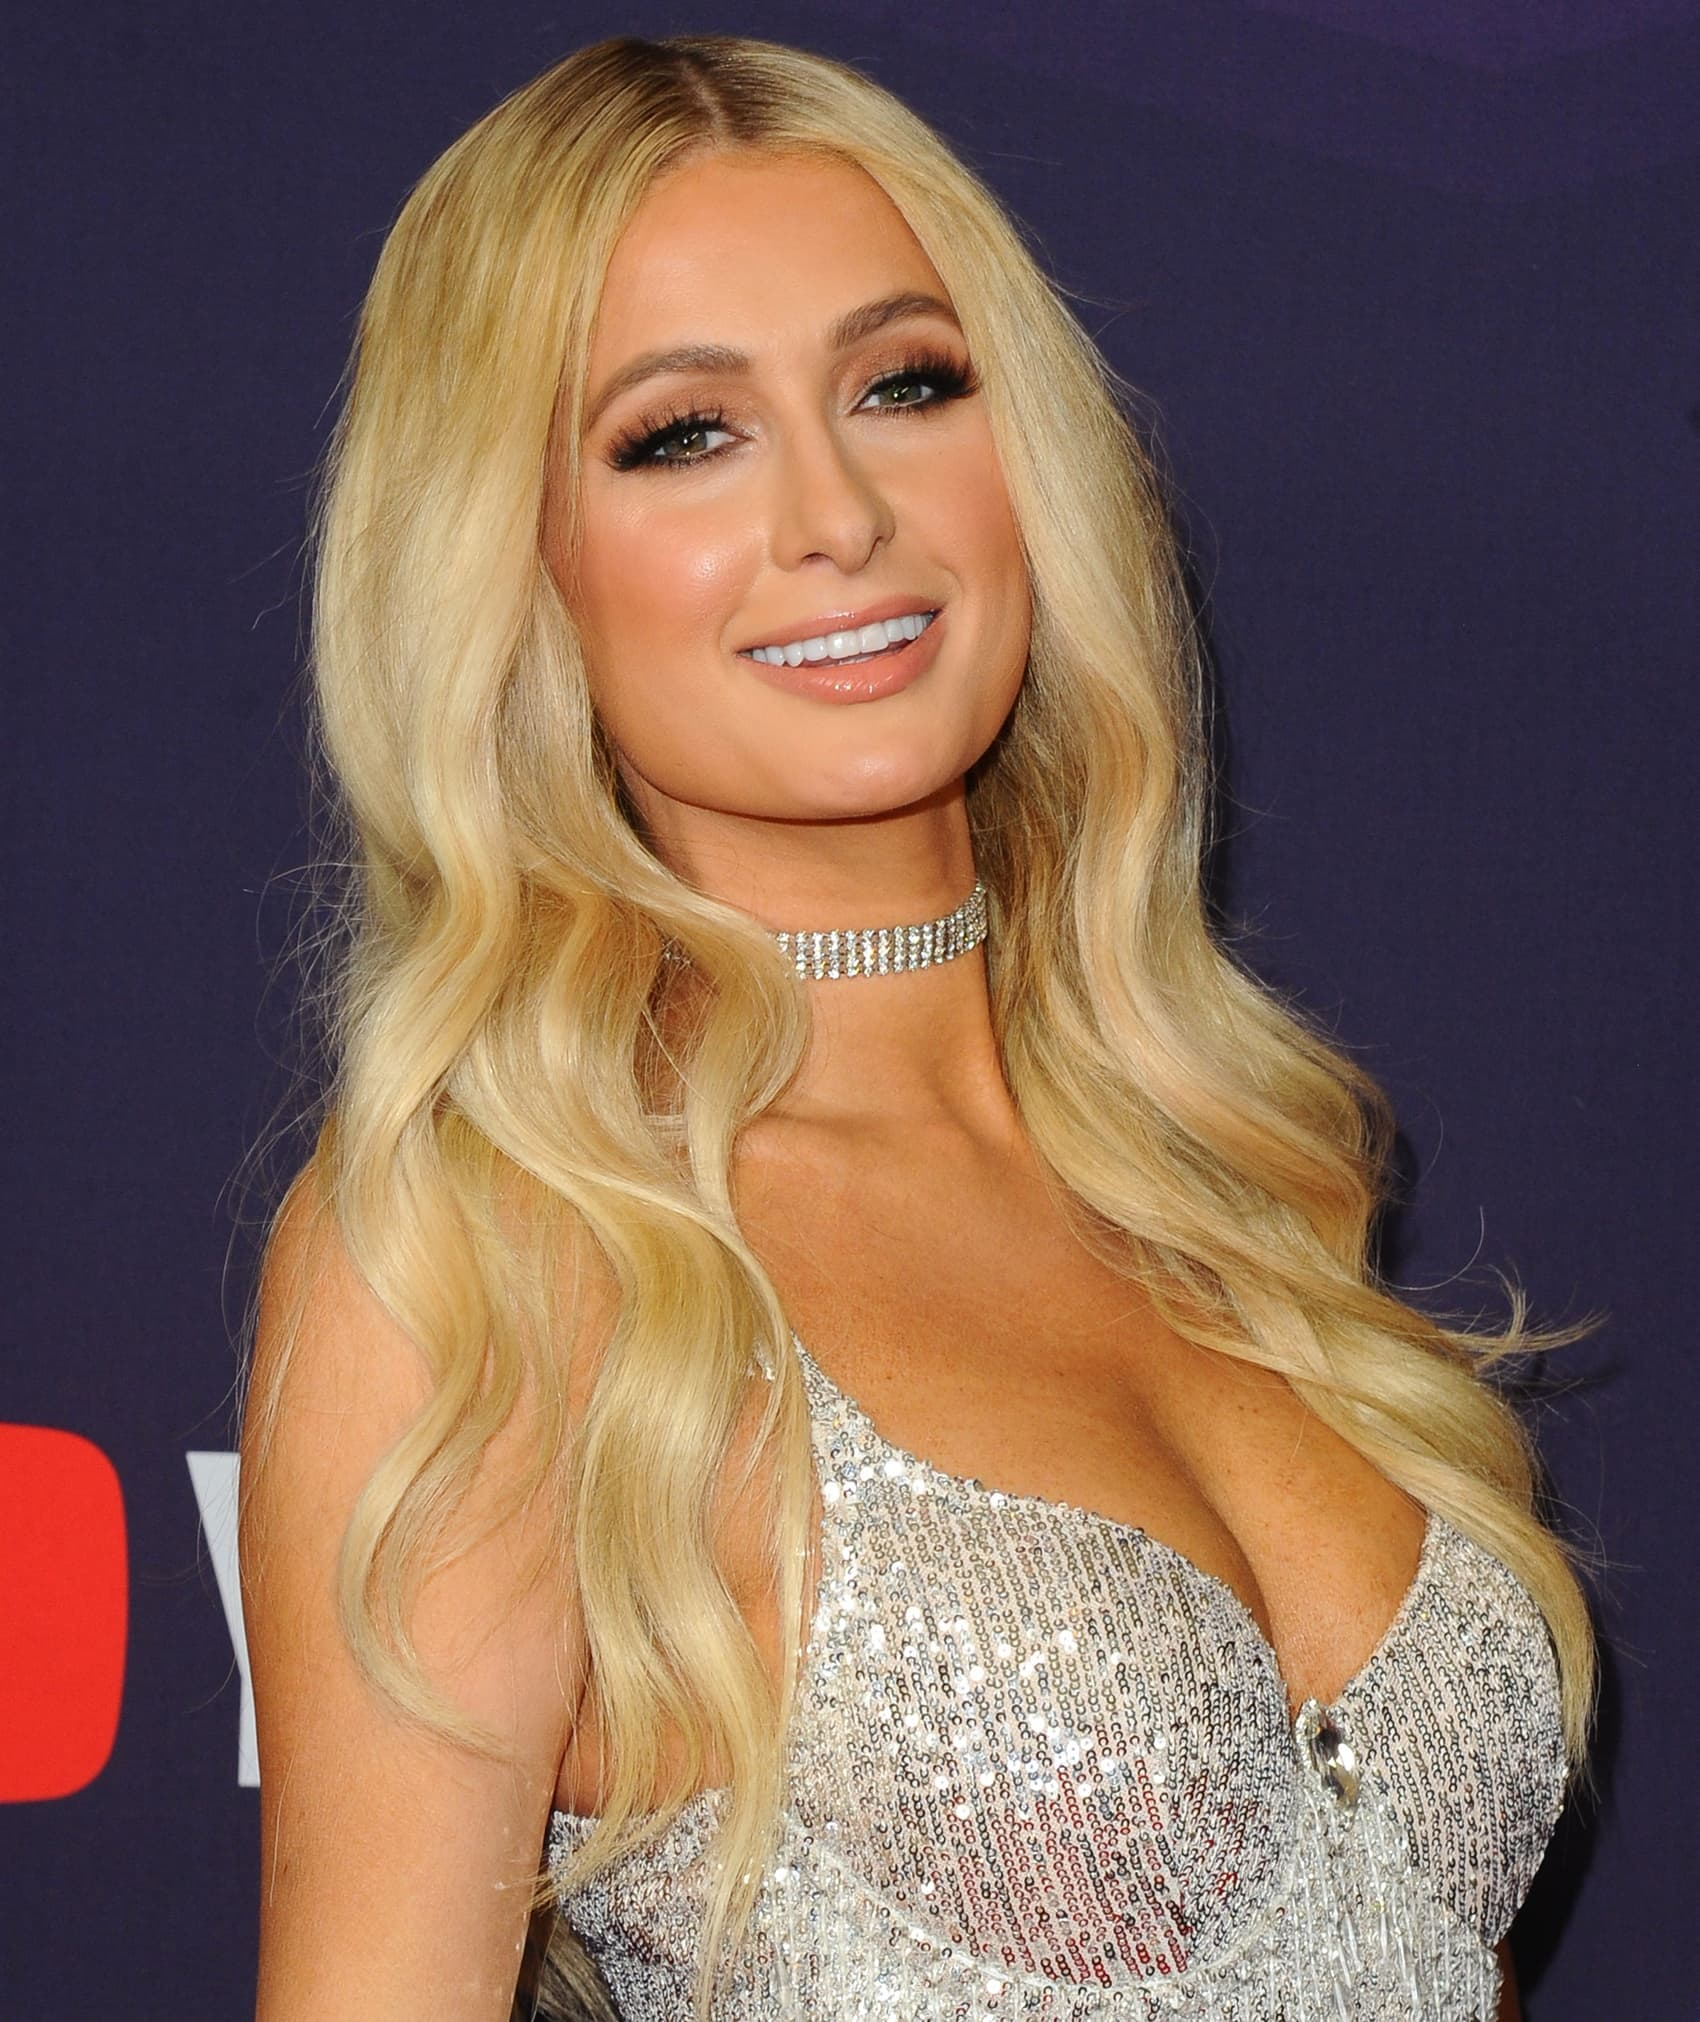 Paris Hilton claims her boobs are real and is glad she never got a boob job